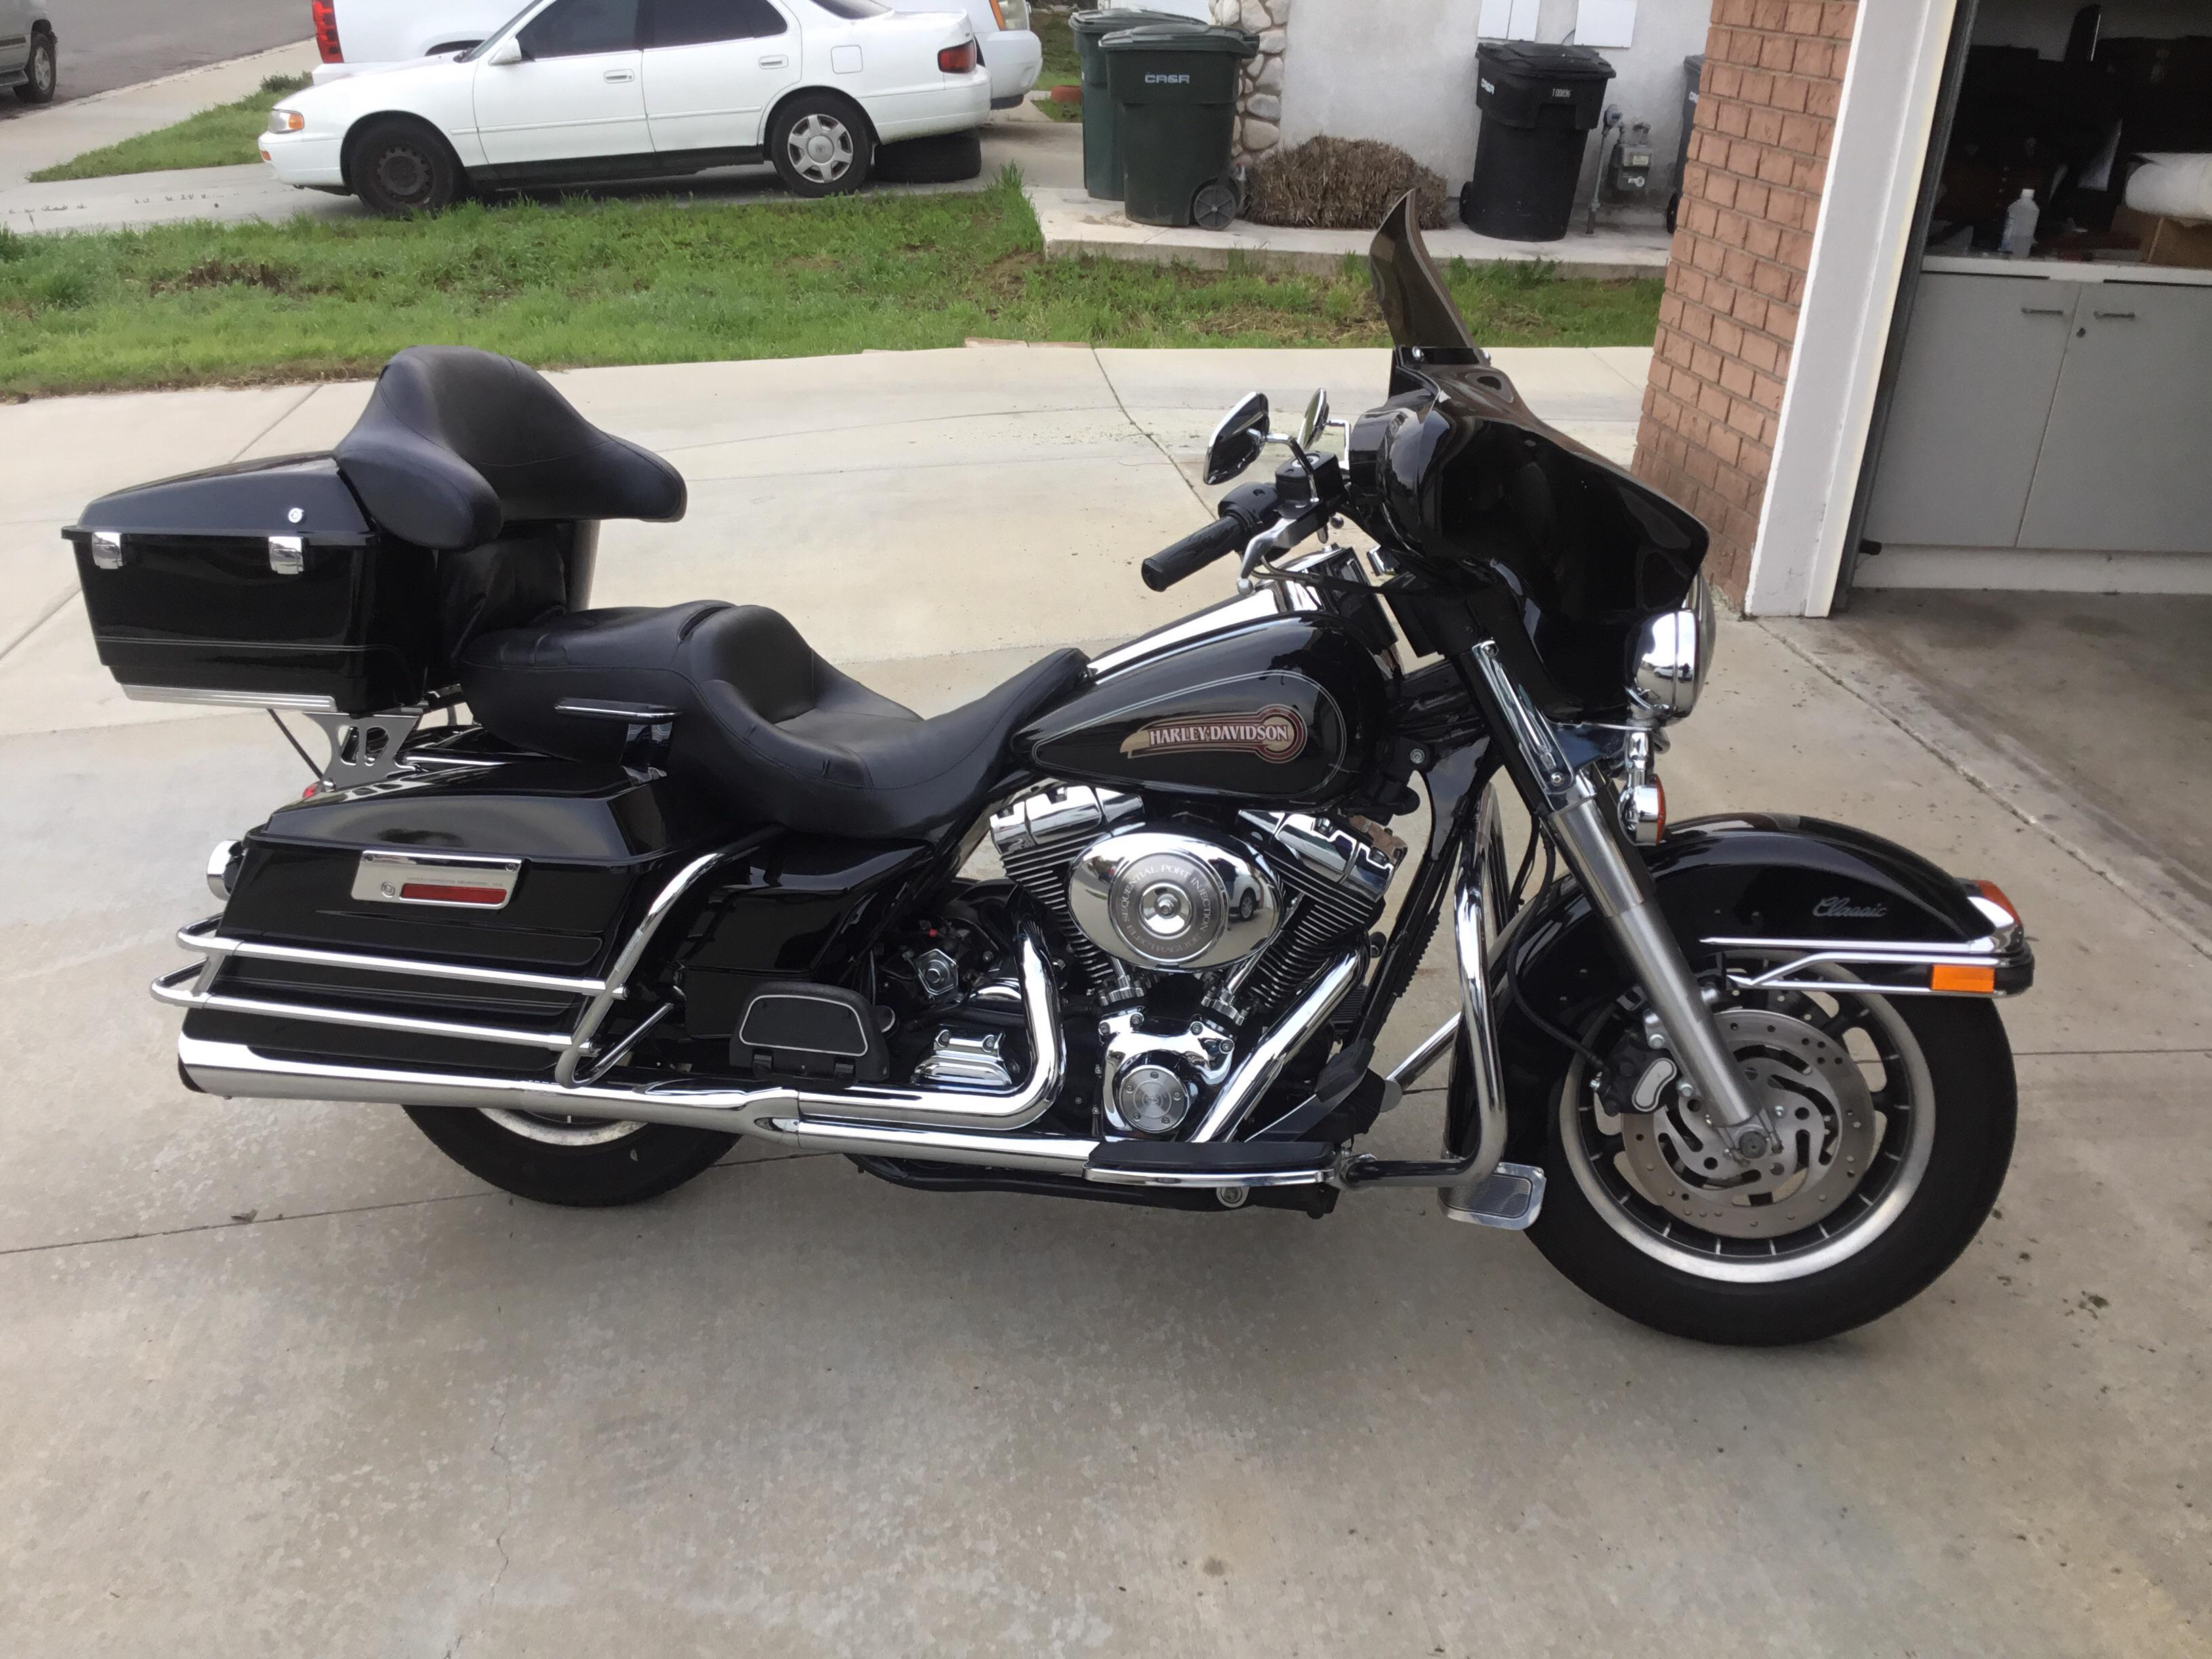 2006 HARLEY-DAVIDSON FLHTCI ELECTRA GLIDE CLASSIC For Sale - $6488 | Free  Shipping